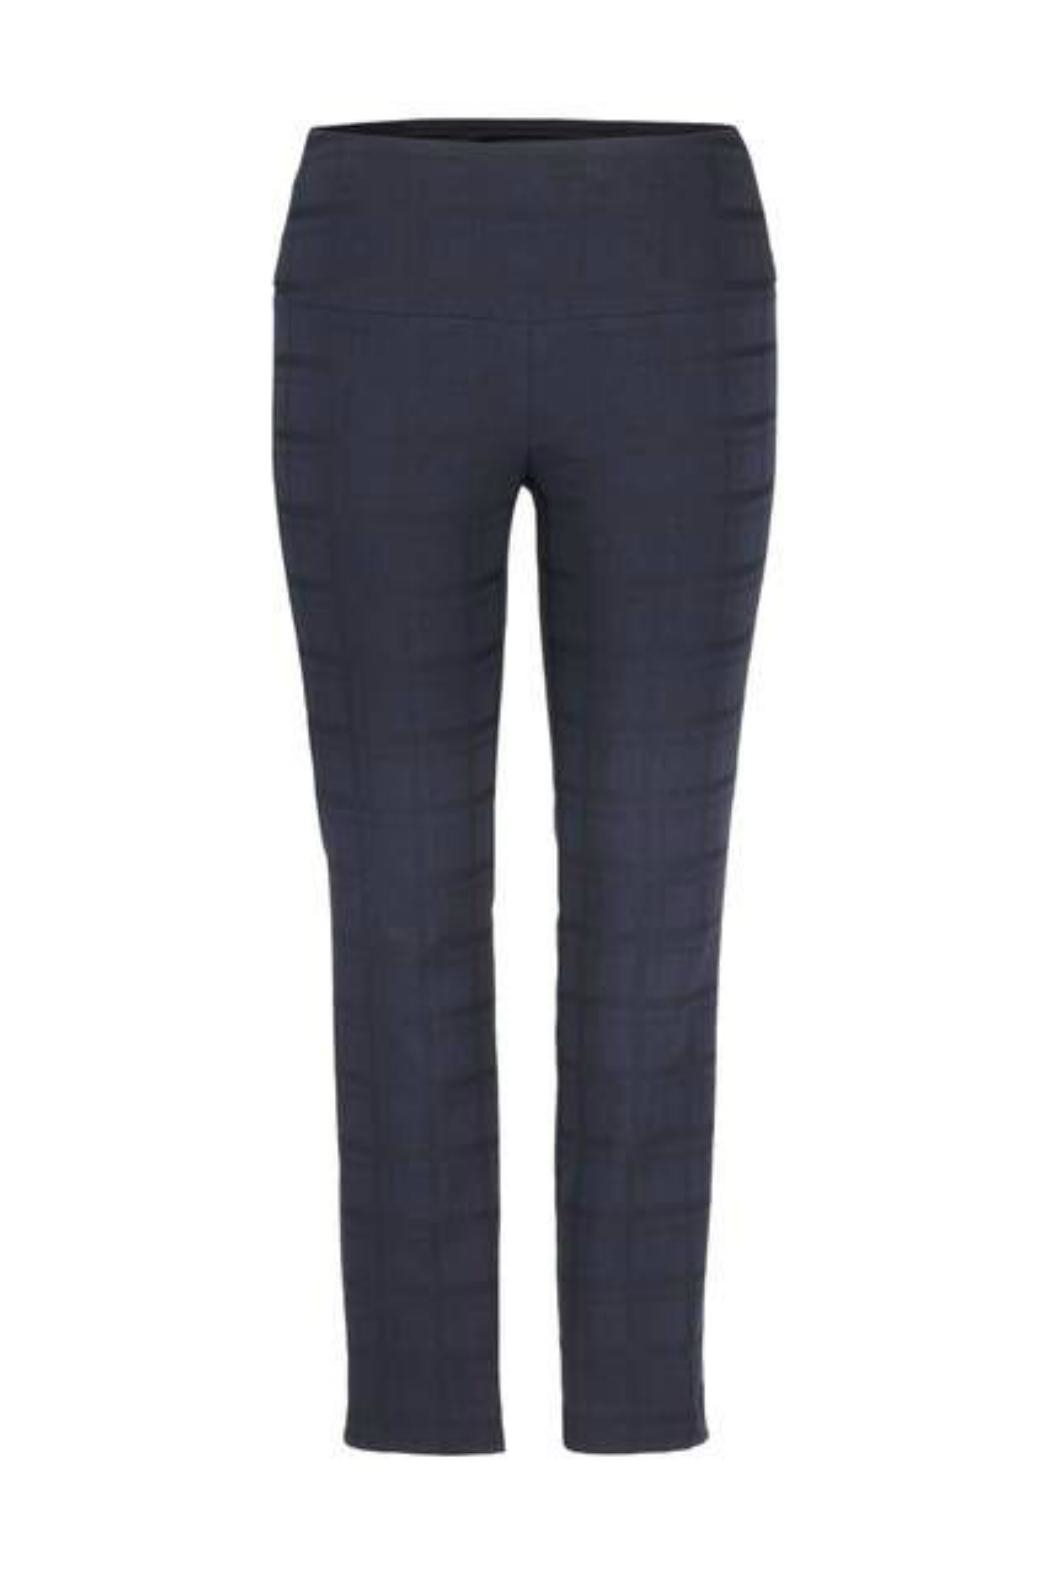 Up! Navy Pull-On Pant - Main Image